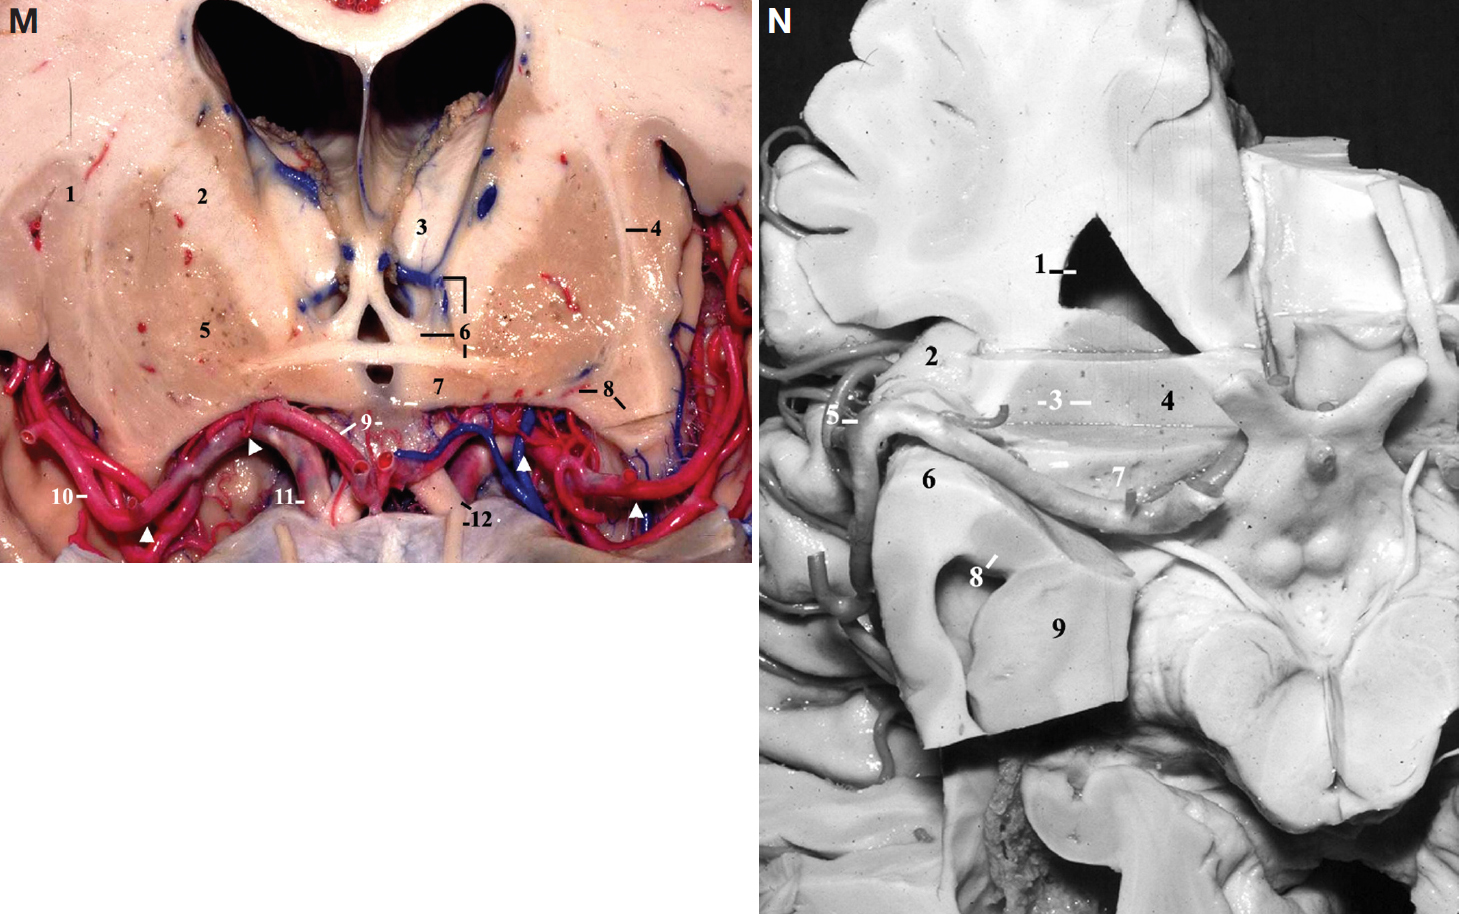 Figure 6 (M–N). M, frontal view. A coronal cut has been made at the level of the bifurcation of the internal carotid artery (anterior perforated substance). 1, insula; 2, internal capsule; 3, thalamus; 4, claustrum, external and extreme capsules; 5, lentiform nucleus; 6, thalamostriate vein, column of the fornix, and anterior commissure; 7, hypothalamus; 8, lateral lenticulostriate arteries and insular pole; 9, lamina terminalis and anterior cerebral artery (A1 segment); 10, middle cerebral artery (MCA) (M2 segment); 11, internal carotid artery (supraclinoid segment); 12, olfactory tract and optic nerve. The arrowheads indicate the extent of the M1 segment of the MCA from the carotid bifurcation to the limen insulae. N, basal view of the right hemisphere. A coronal section, followed by an axial section, has been performed at the level of the anterior perforated substance. 1, frontal horn; 2, accessory gyrus of the insula; 3, lentiform nucleus and the internal capsule; 4, head of the caudate nucleus; 5, genu of the MCA; 6, insular pole; 7, anterior perforated substance; 8, amygdala; 9, head of the hippocampus. (Images courtesy of AL Rhoton, Jr.)